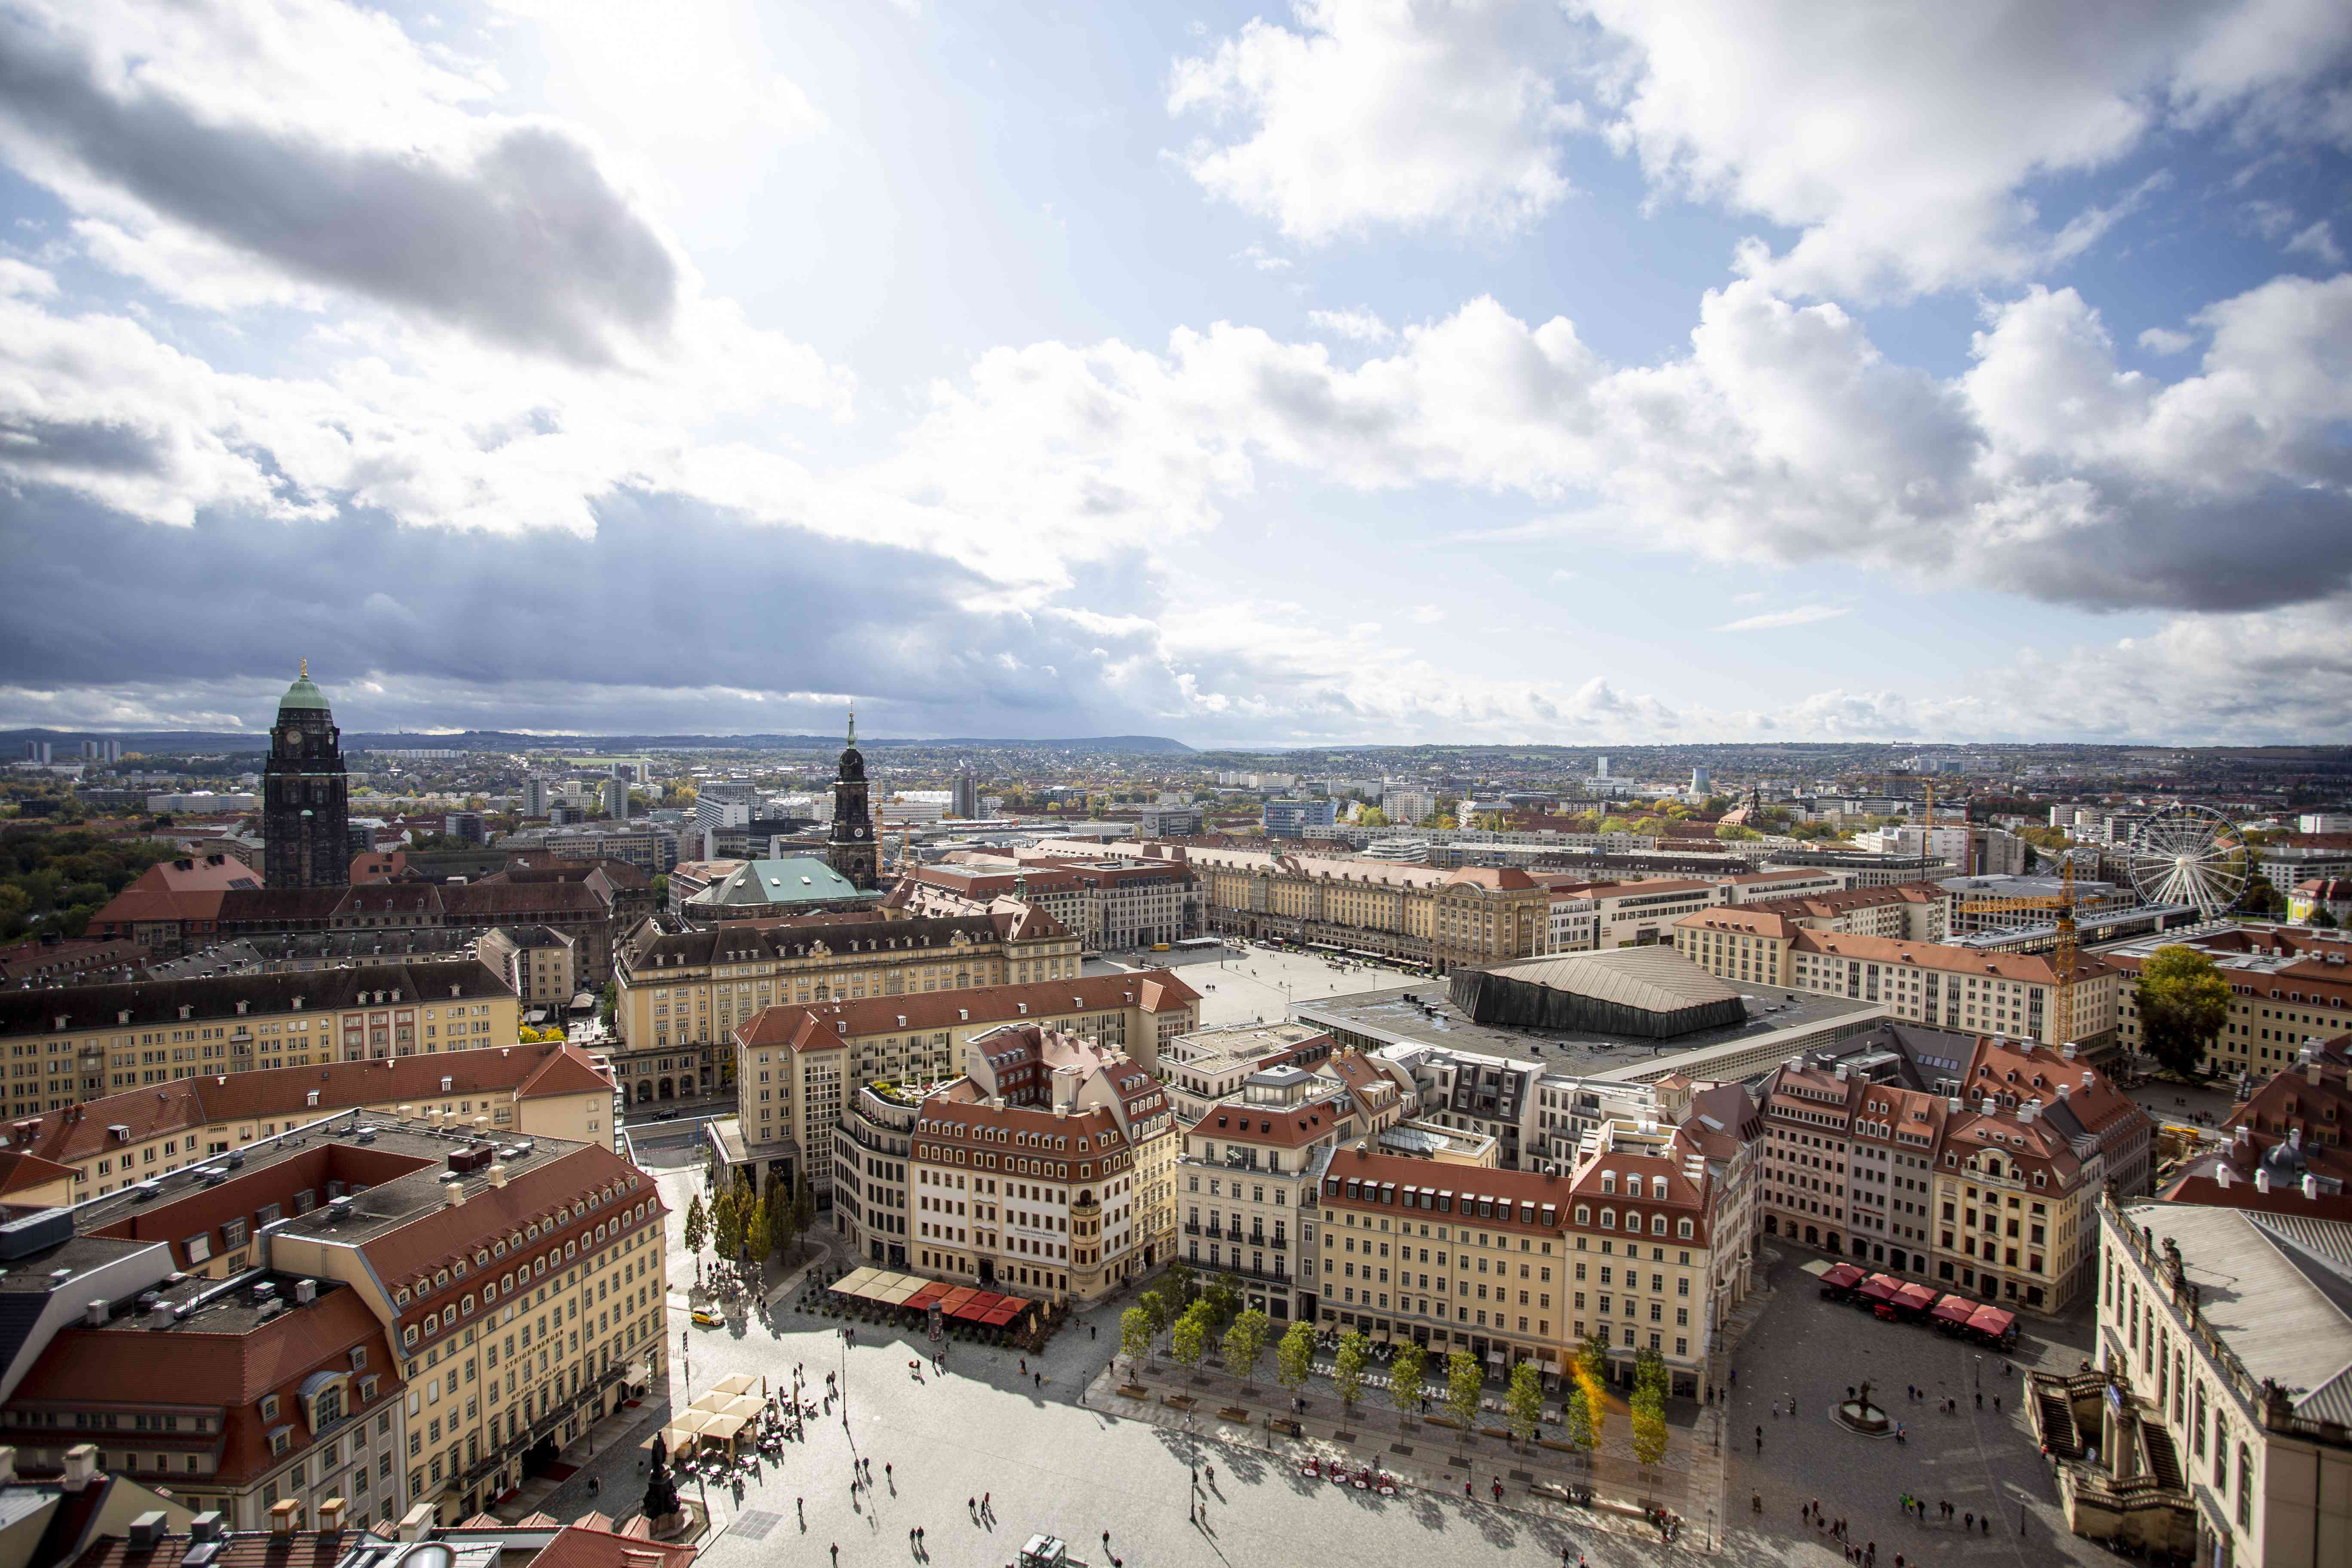 View of the Dresden cityscape from the Tower at Church of Our Lady